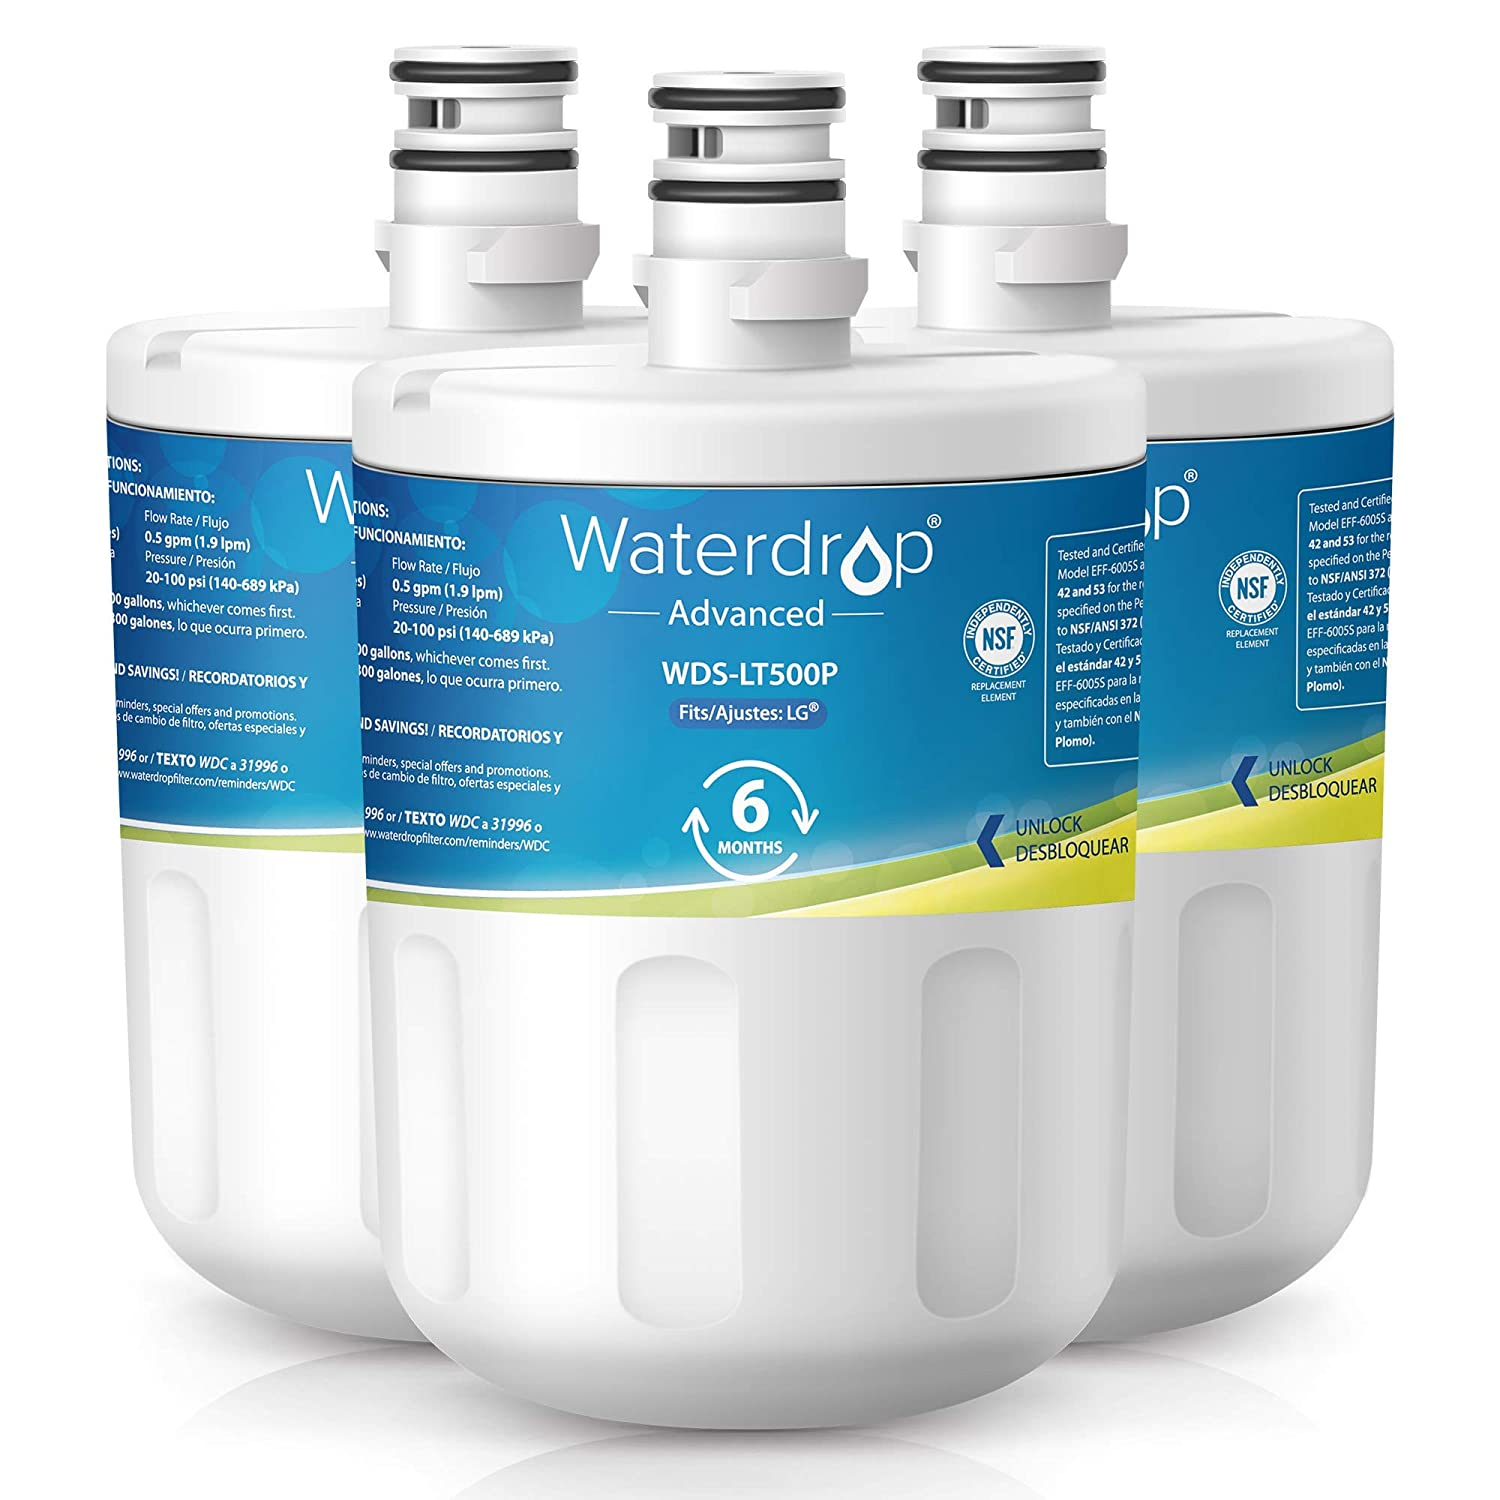 Waterdrop NSF 53&42 Certified LT500P Replacement Refrigerator Water Filter, Compatible with LG LT500P, 5231JA2002A, ADQ72910901, Kenmore GEN11042FR-08, 9890, 46-9890, Advanced Series, Pack of 3